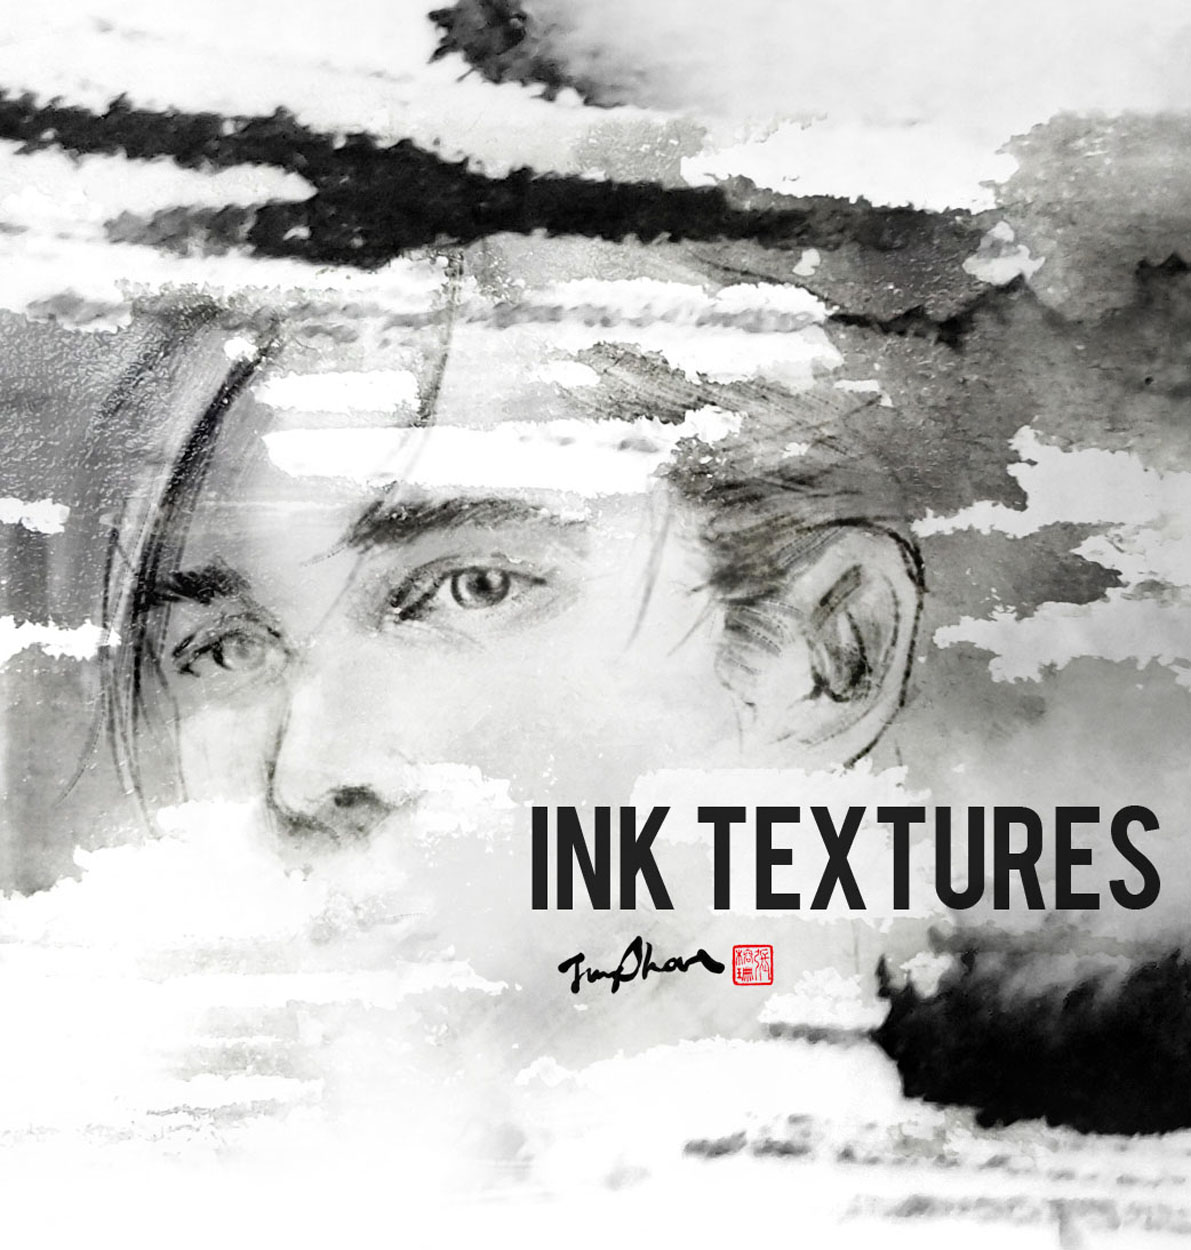 Ink Textures III by Jungshan